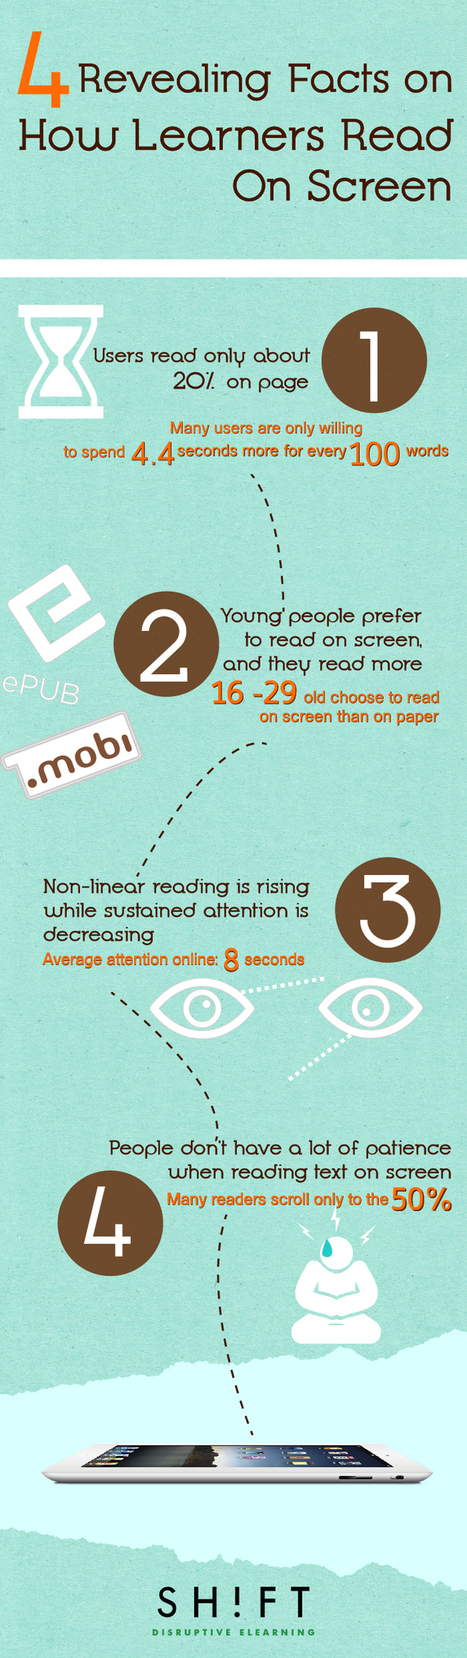 Four Revealing Facts on How Learners Read On Screen [Infographic] | Progressive Training | Scoop.it